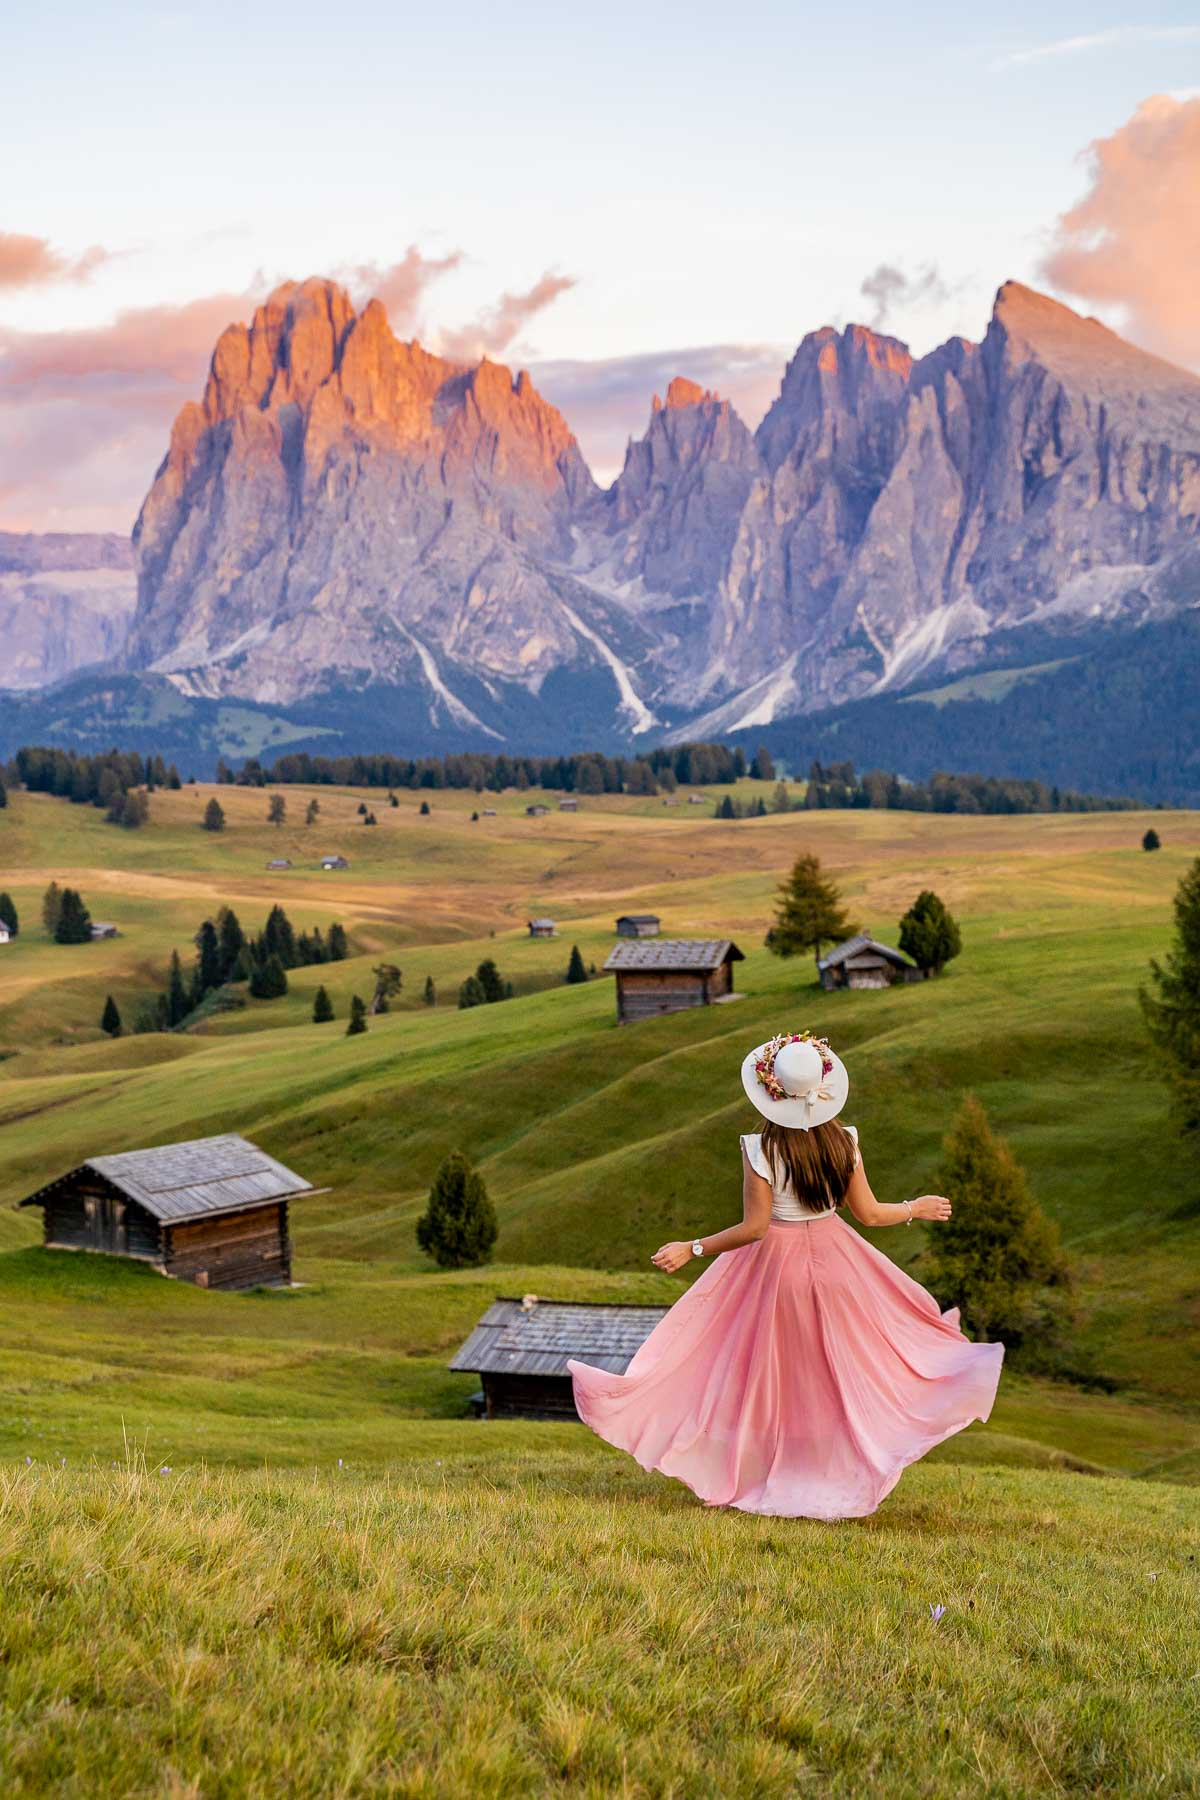 Girl in a pink skirt twirling at the meadows of Alpe di Siusi in the Dolomites